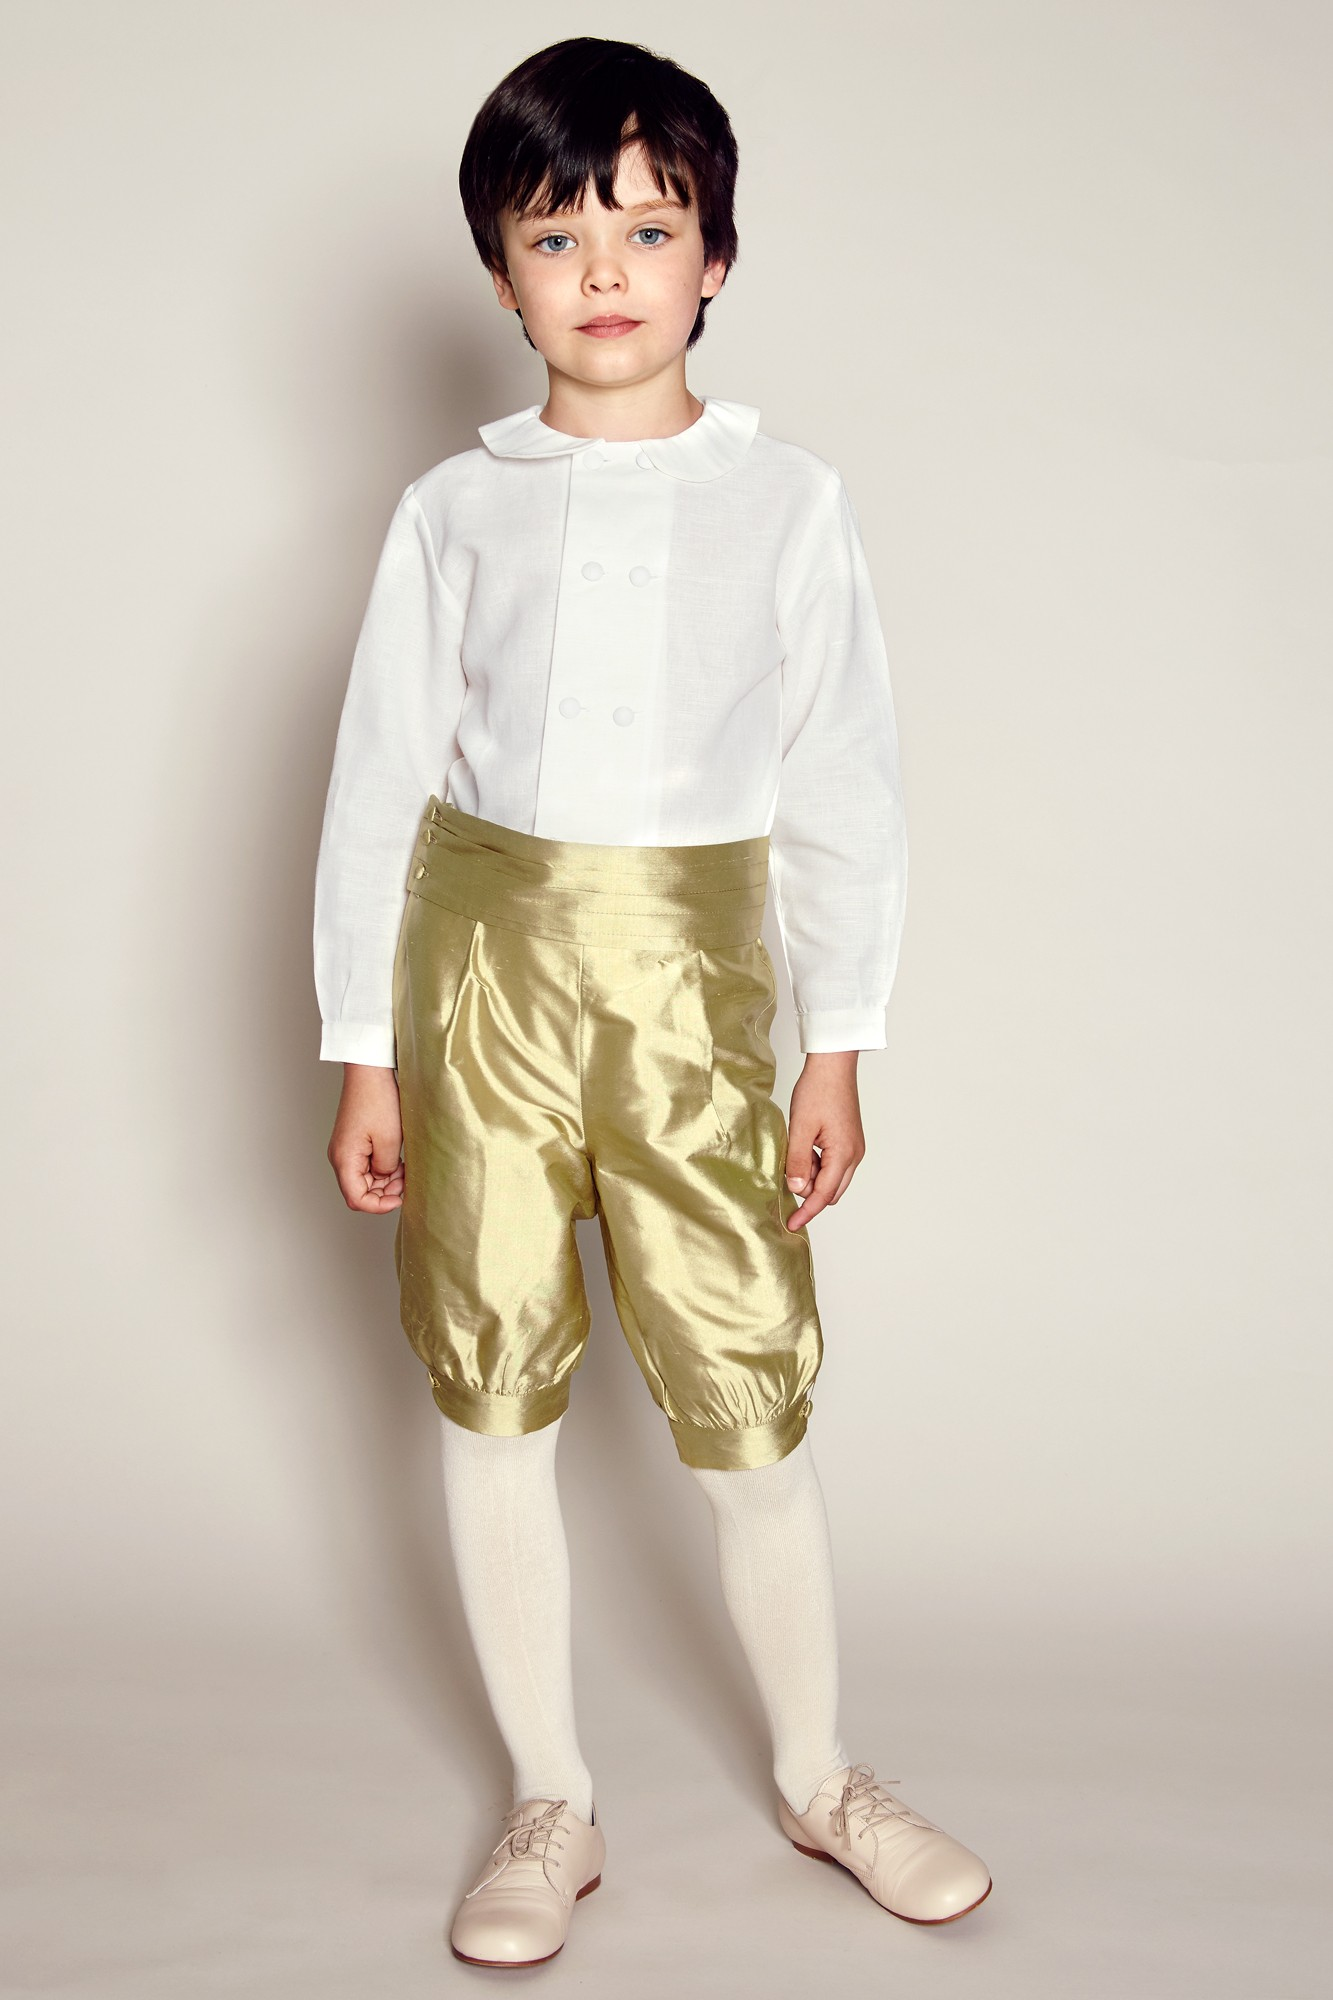 Pepe & Co Prince George pageboy outfit